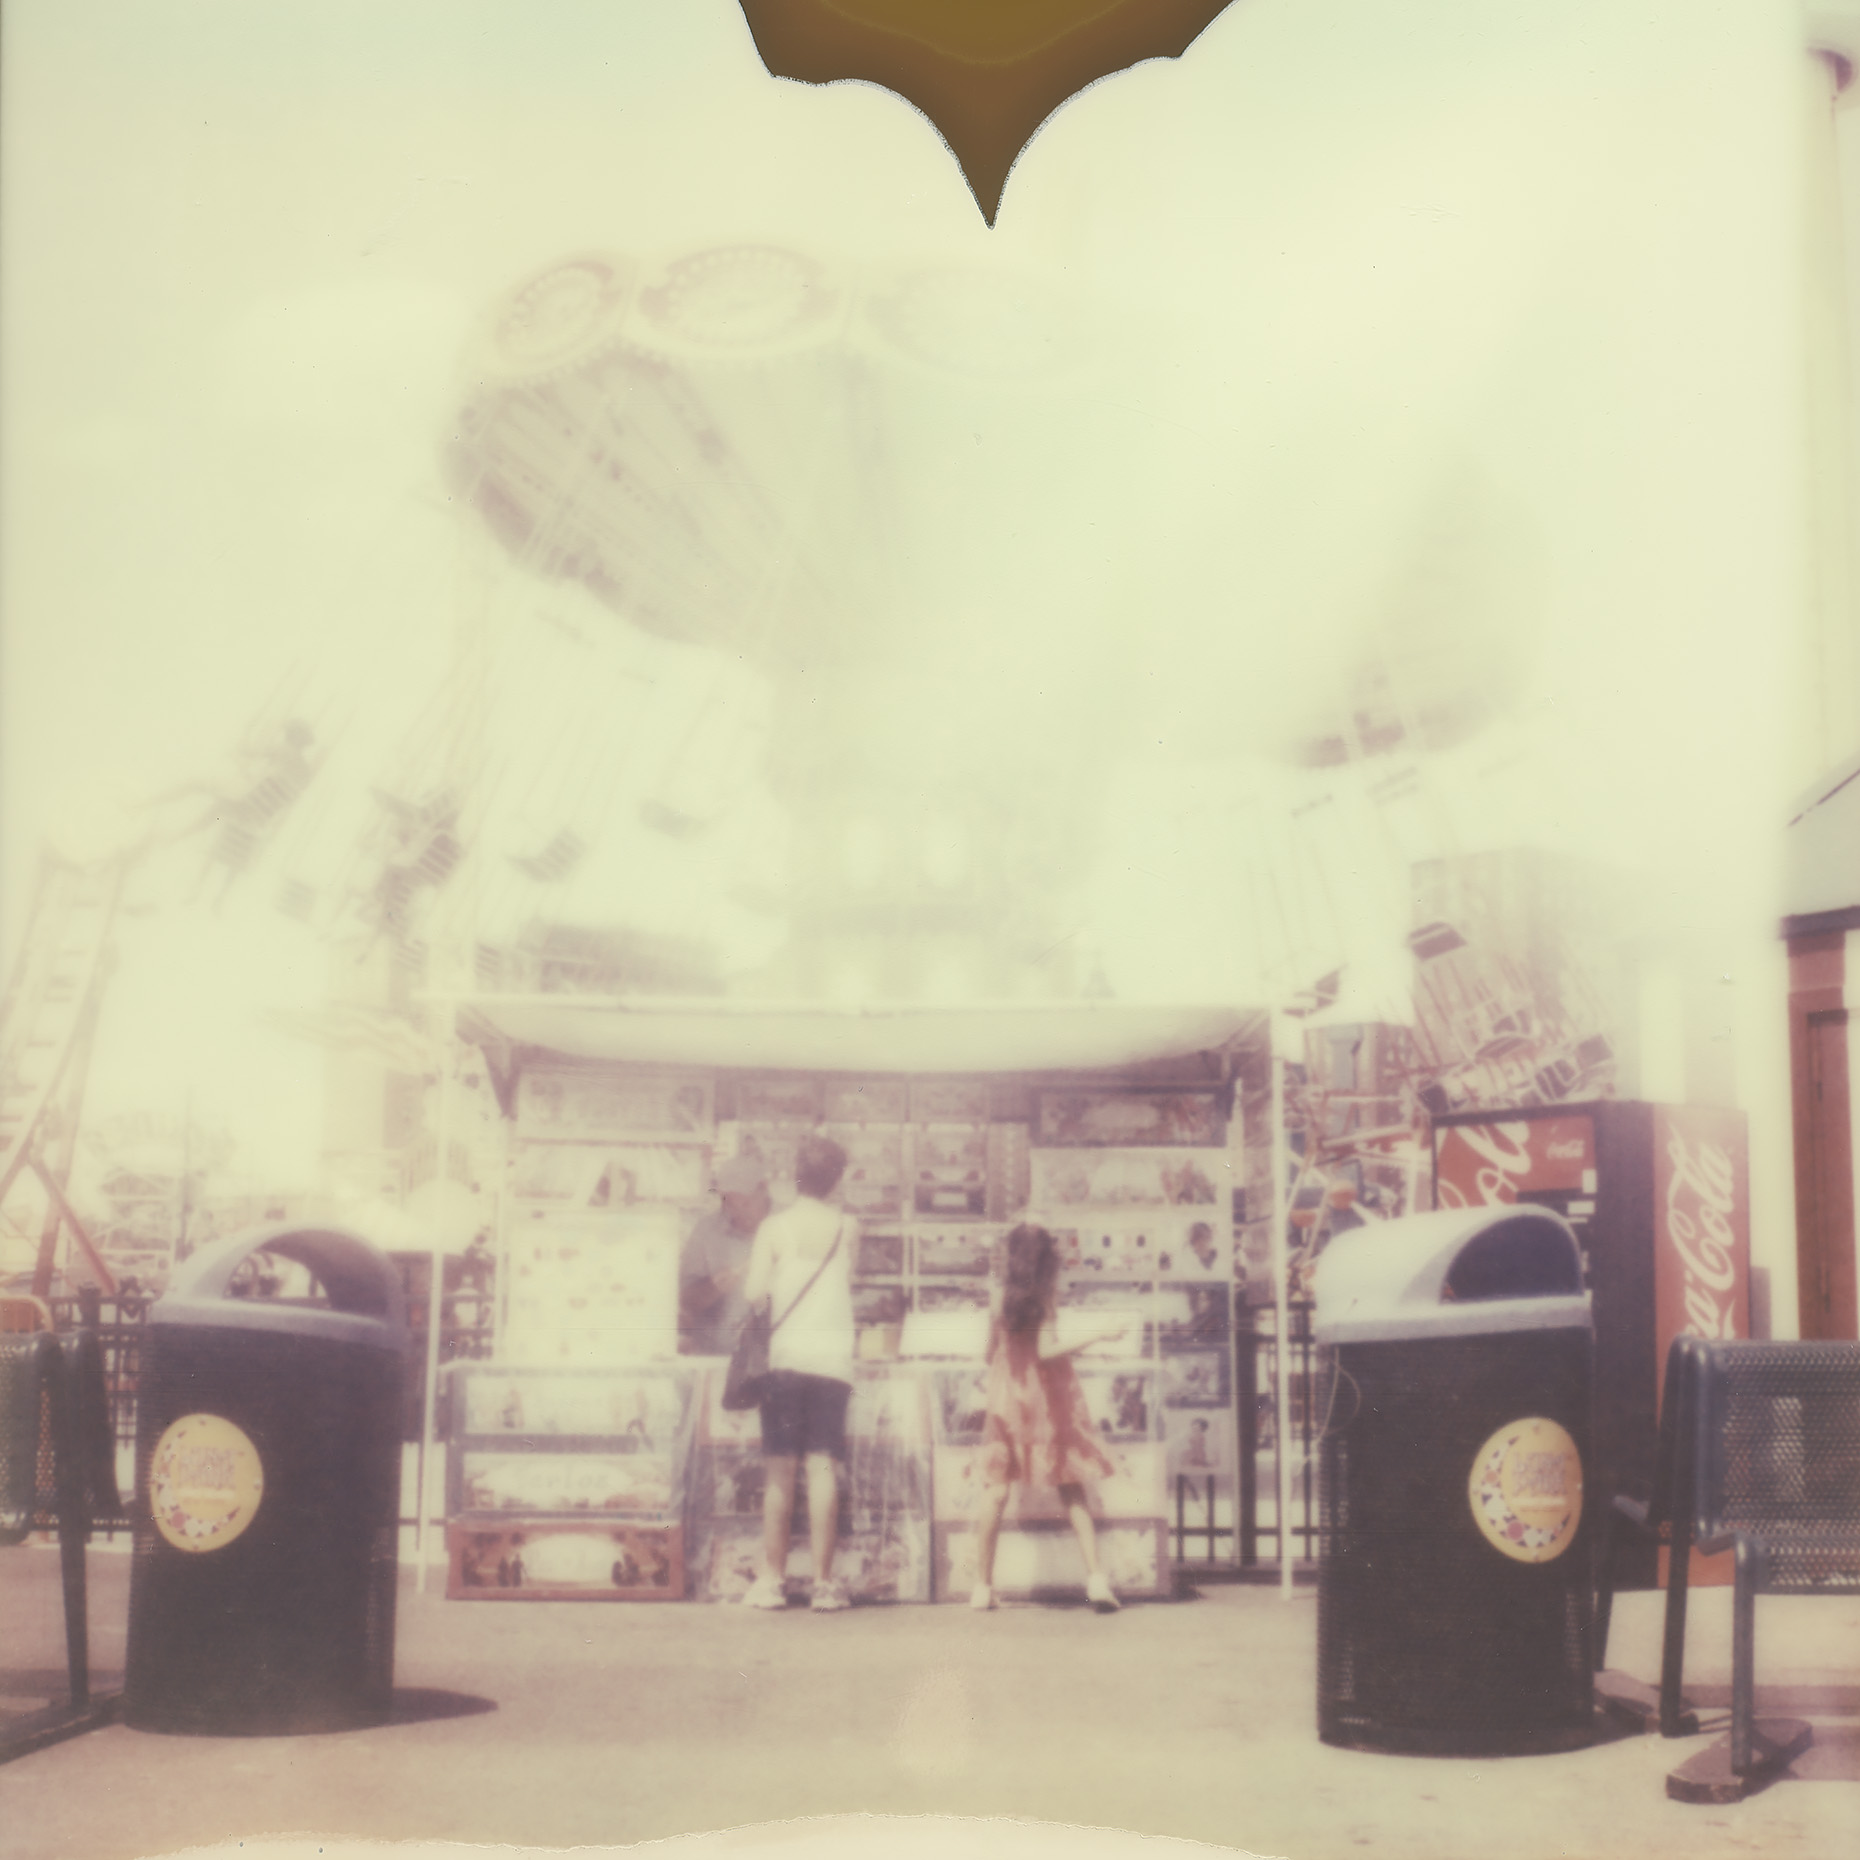 20120623-px680cool-01